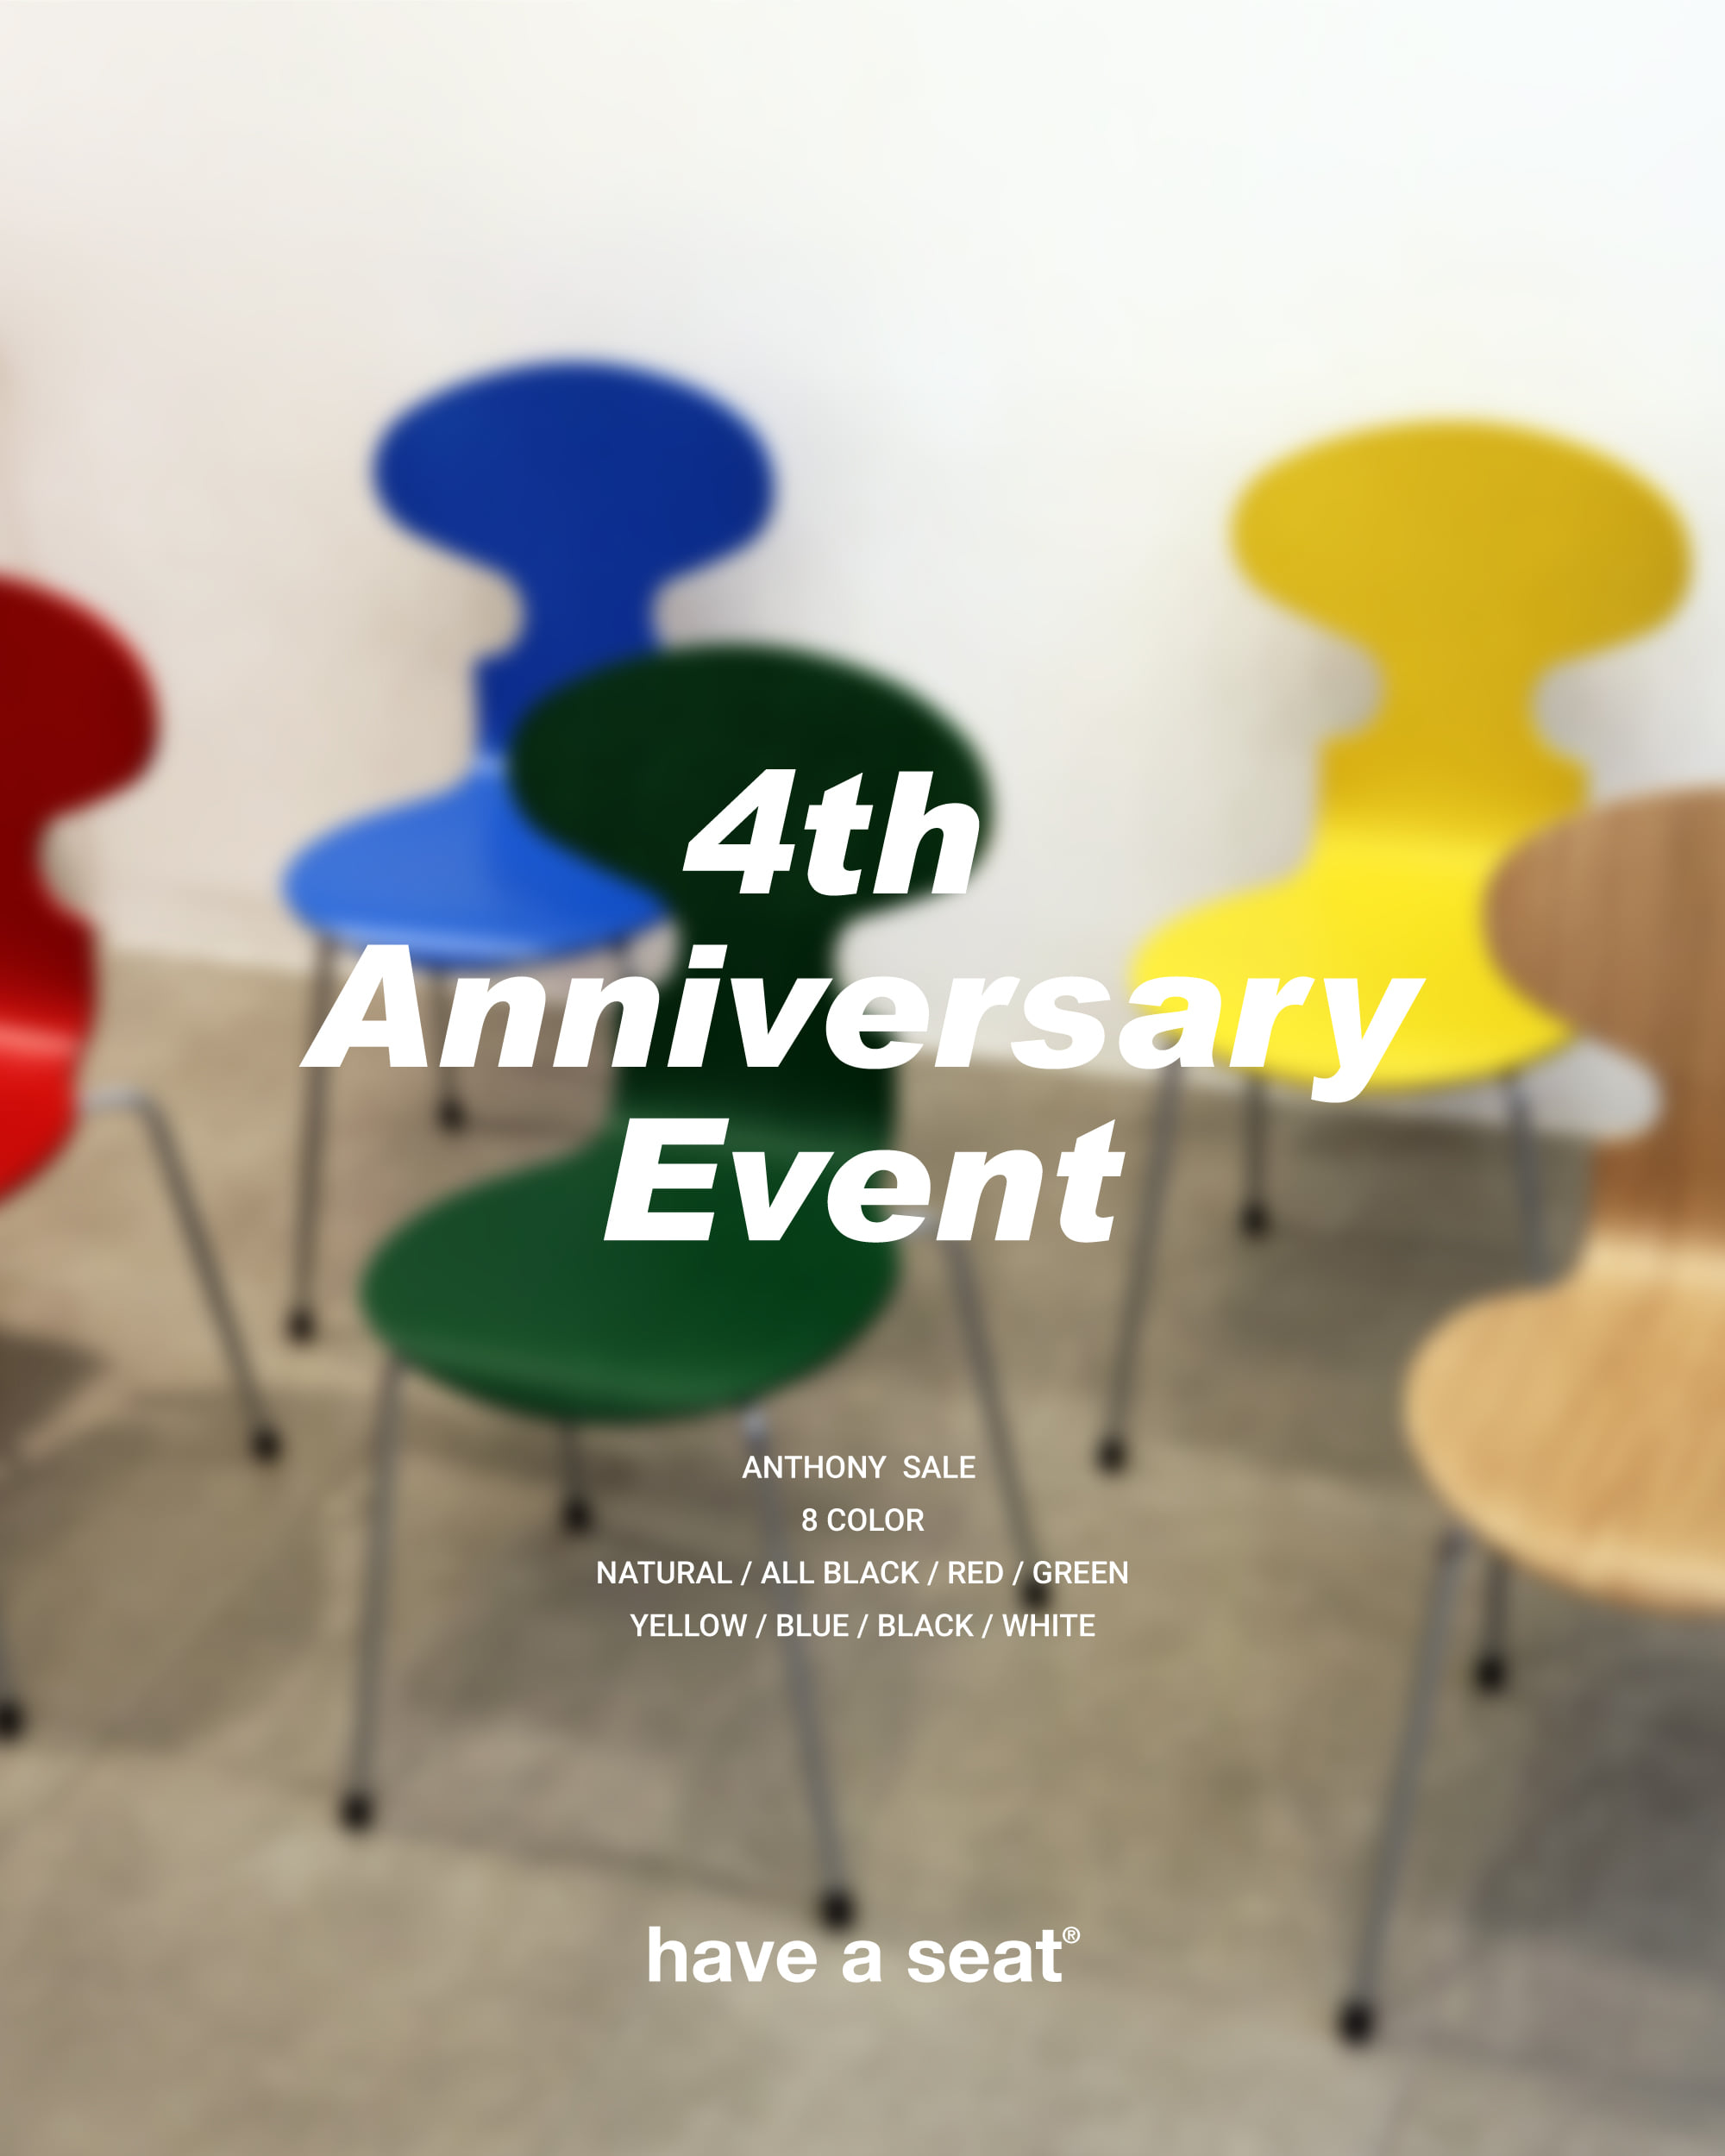 4th anniversary event